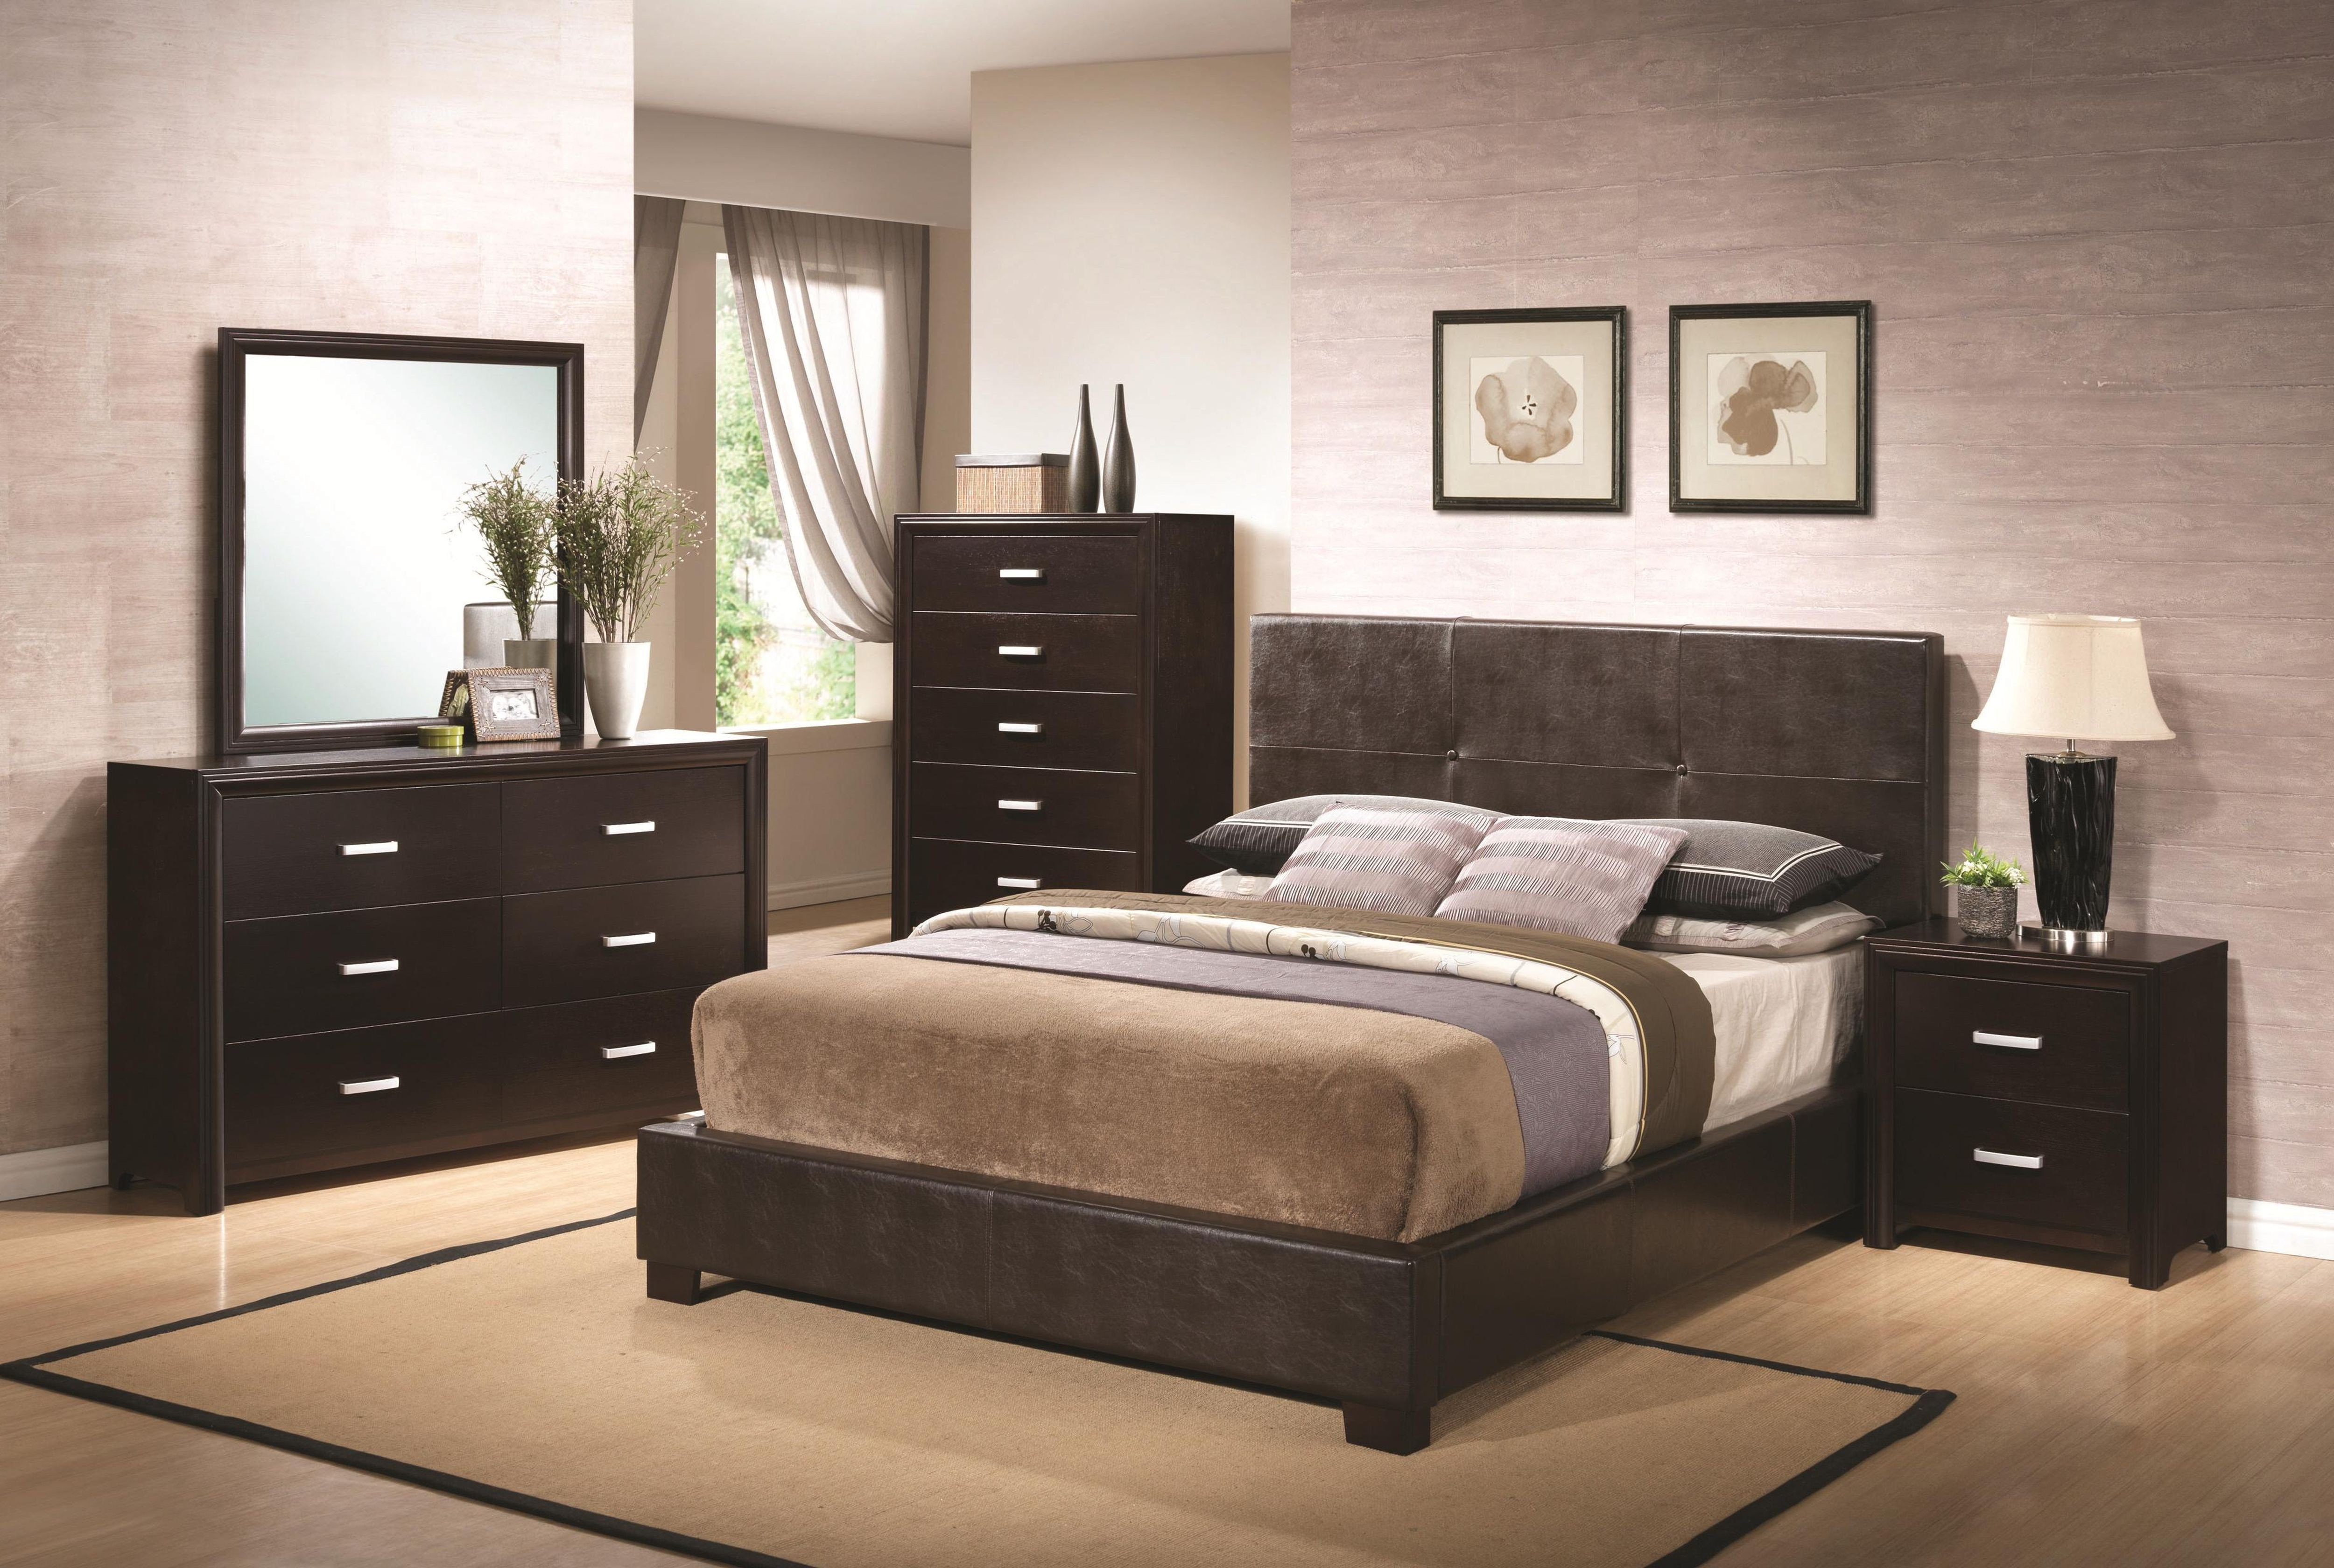 Black Leather Bedroom Set New Rooms to Go Queen Bedroom Set